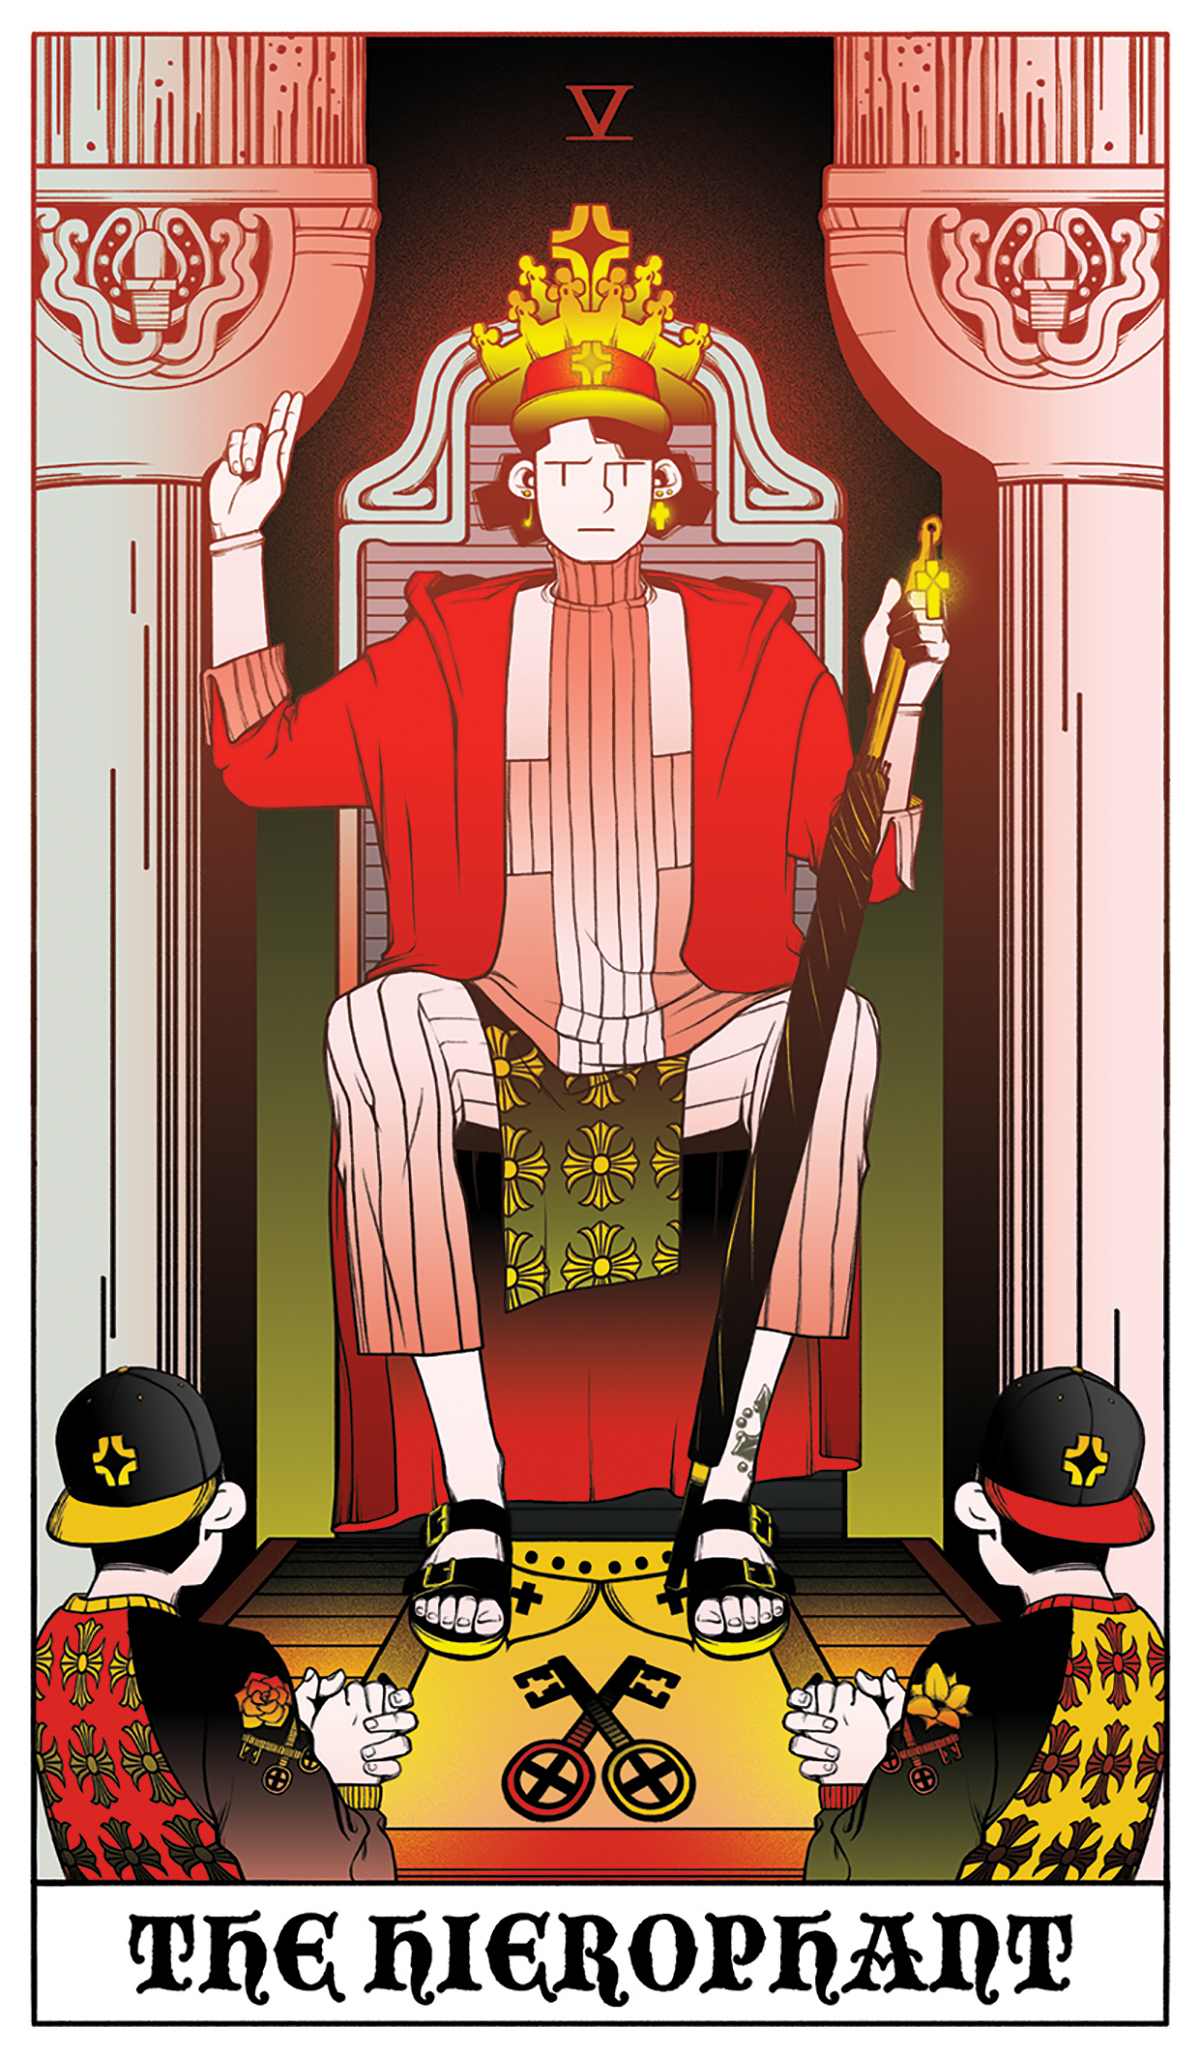 The Hierophant Tarot Card's True Meaning: Love